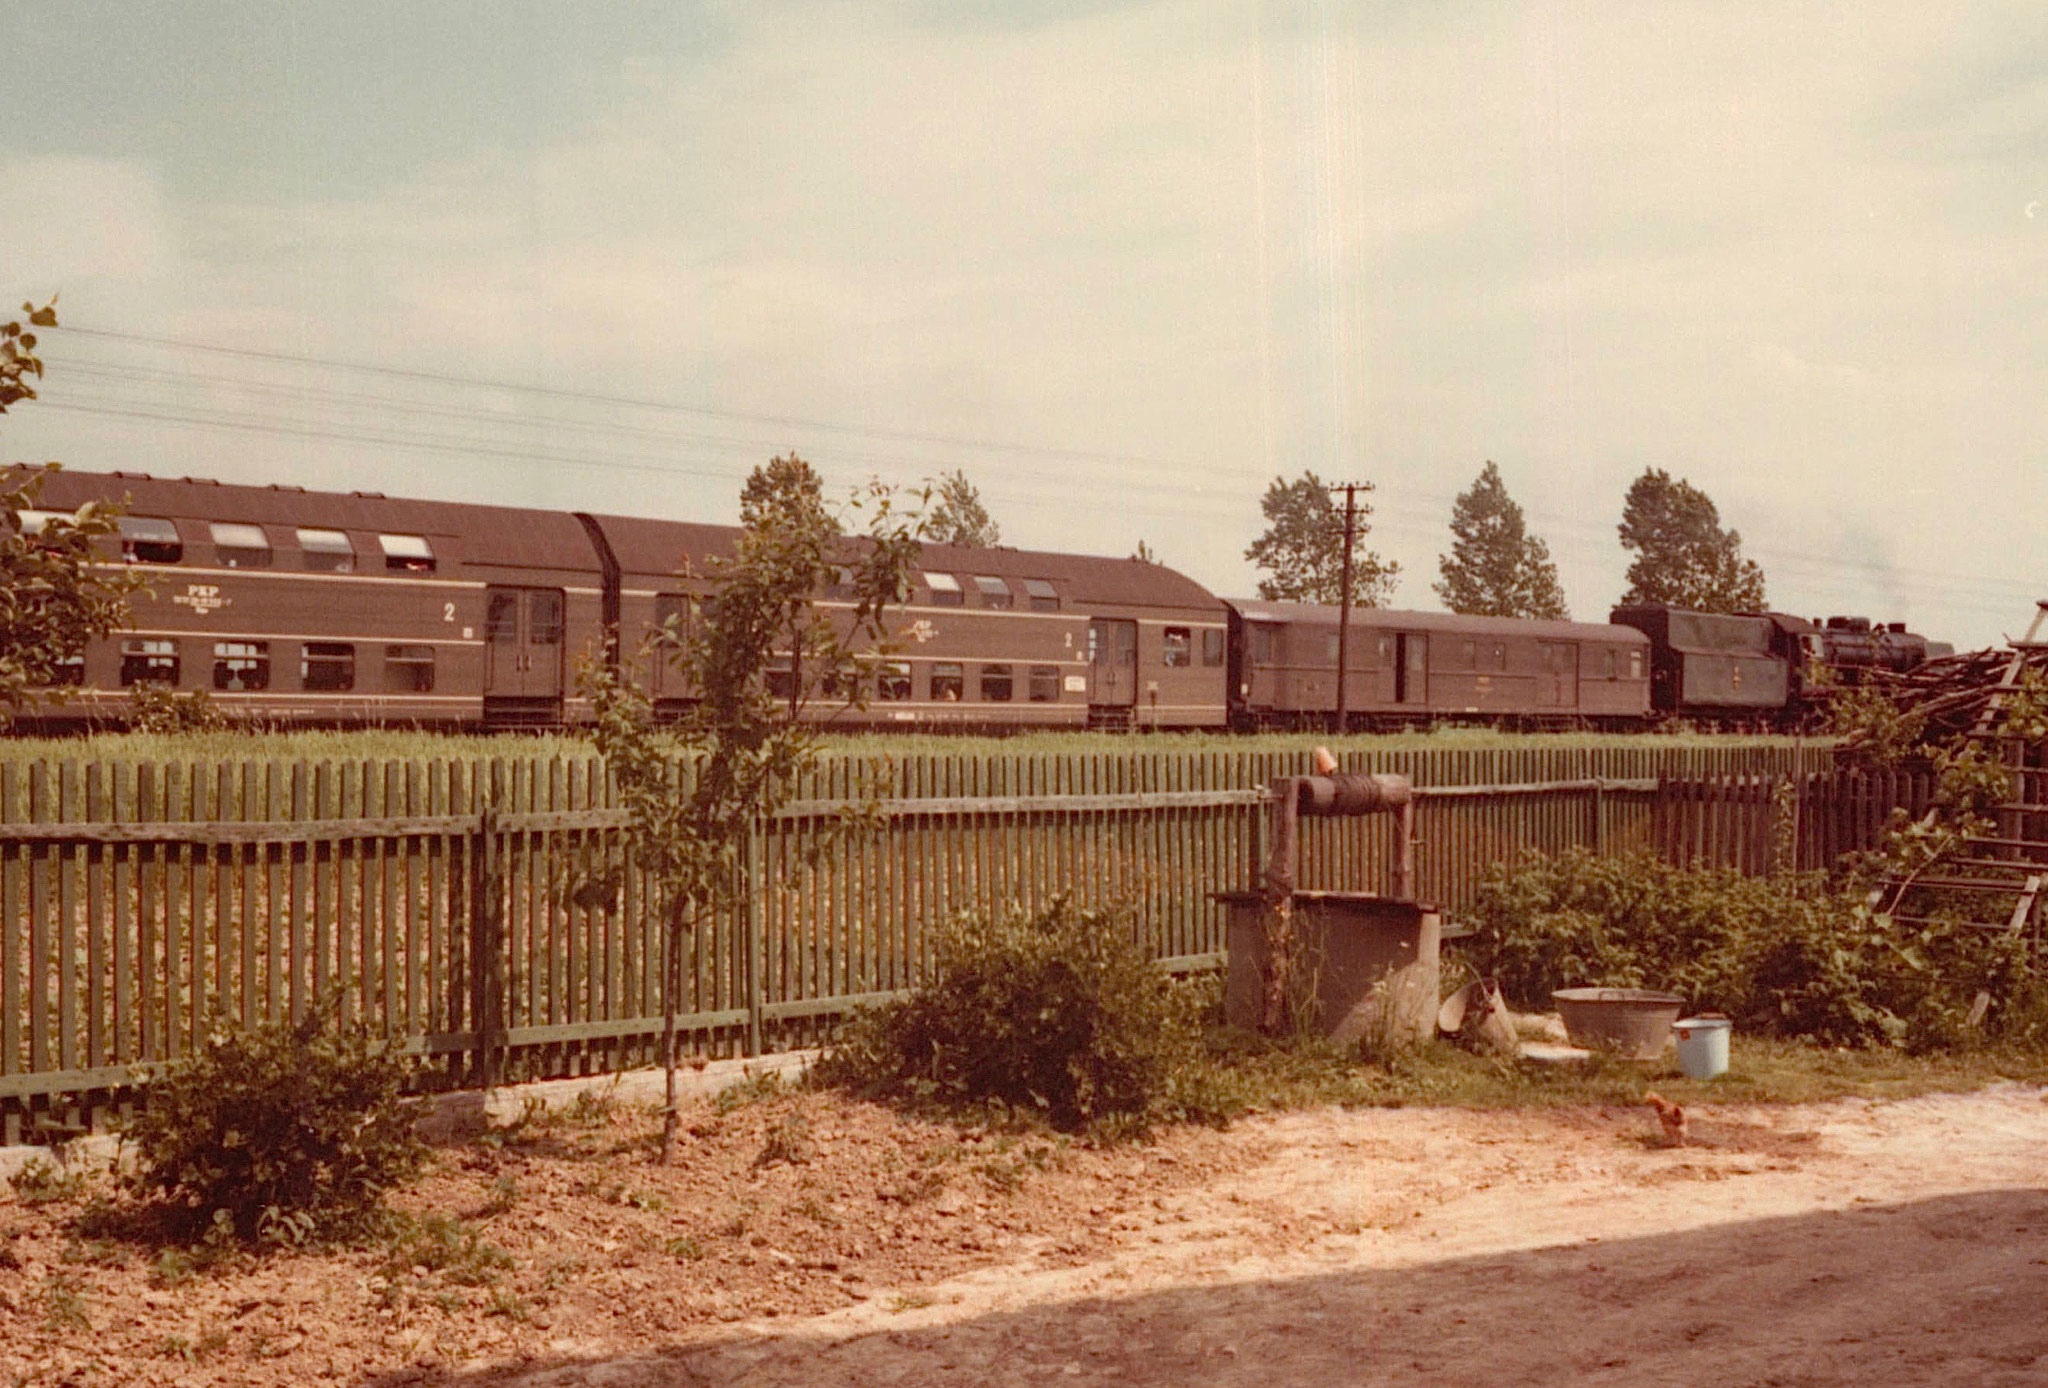 double decker train going by Jadwiga's driveway, 1978